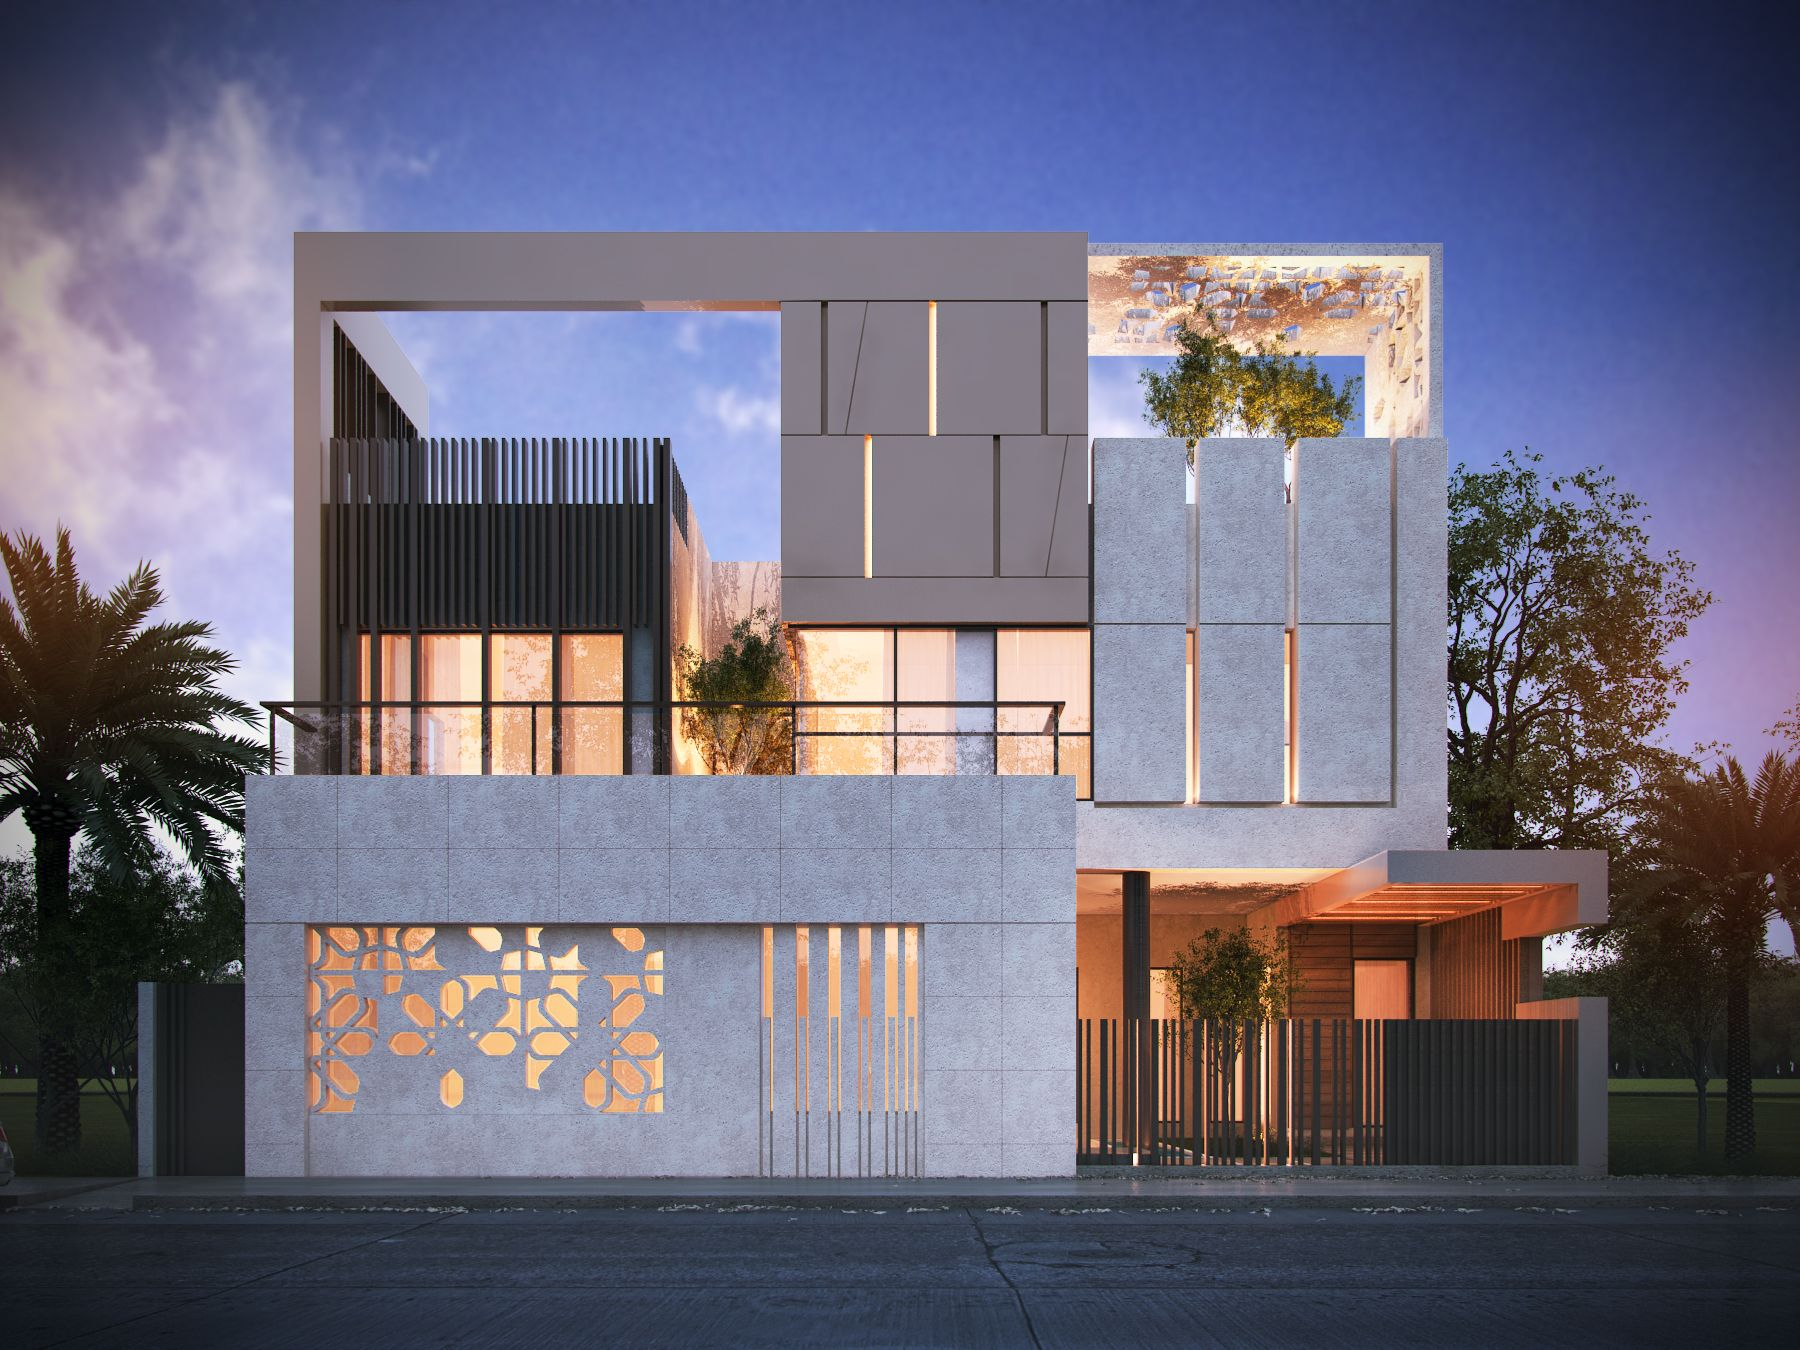 Private villa 600 m sarah sadeq architects sarah sadeq for Contemporary building elevation